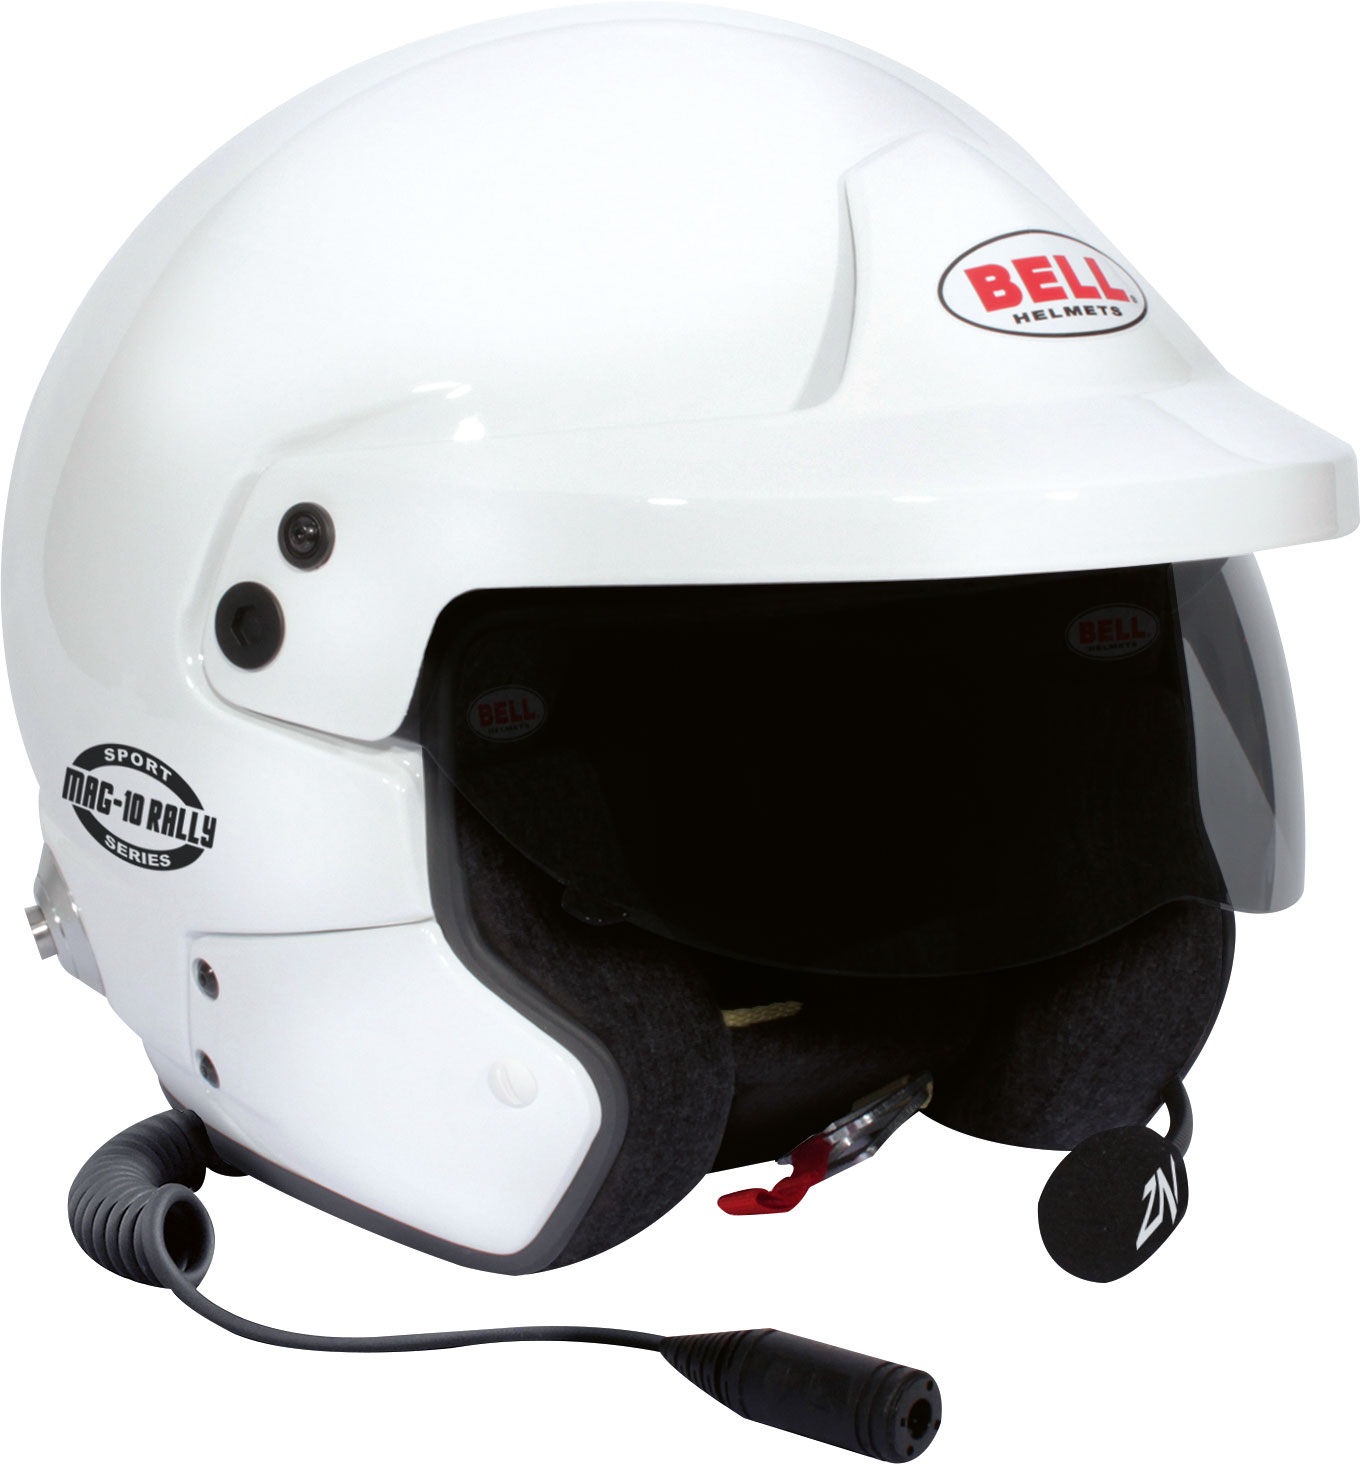 BELL Helm MAG-10 Sport Rally